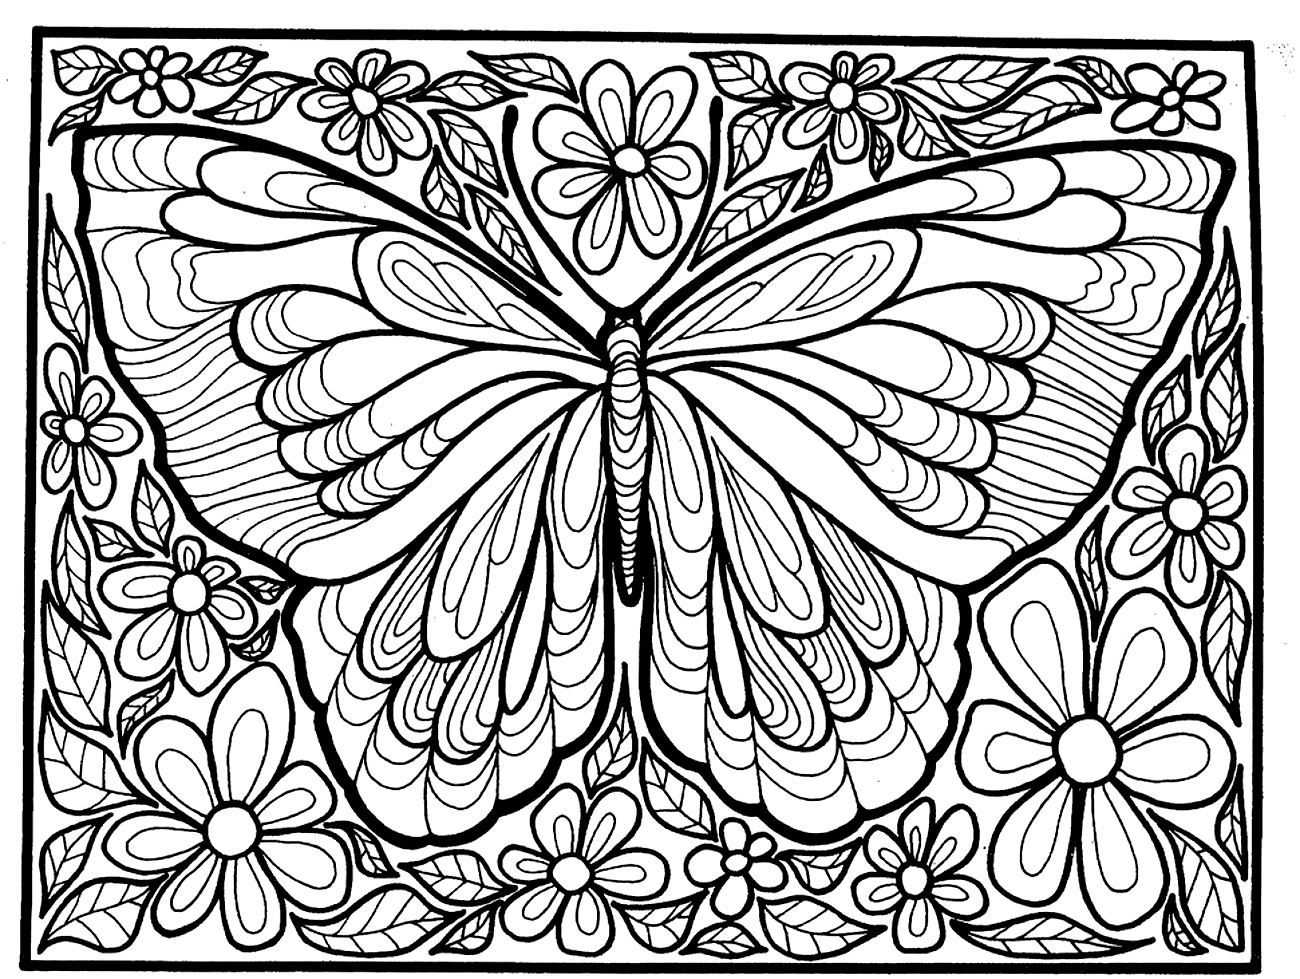 Free Butterfly Coloring Pages For Adults at GetDrawings.com | Free ...